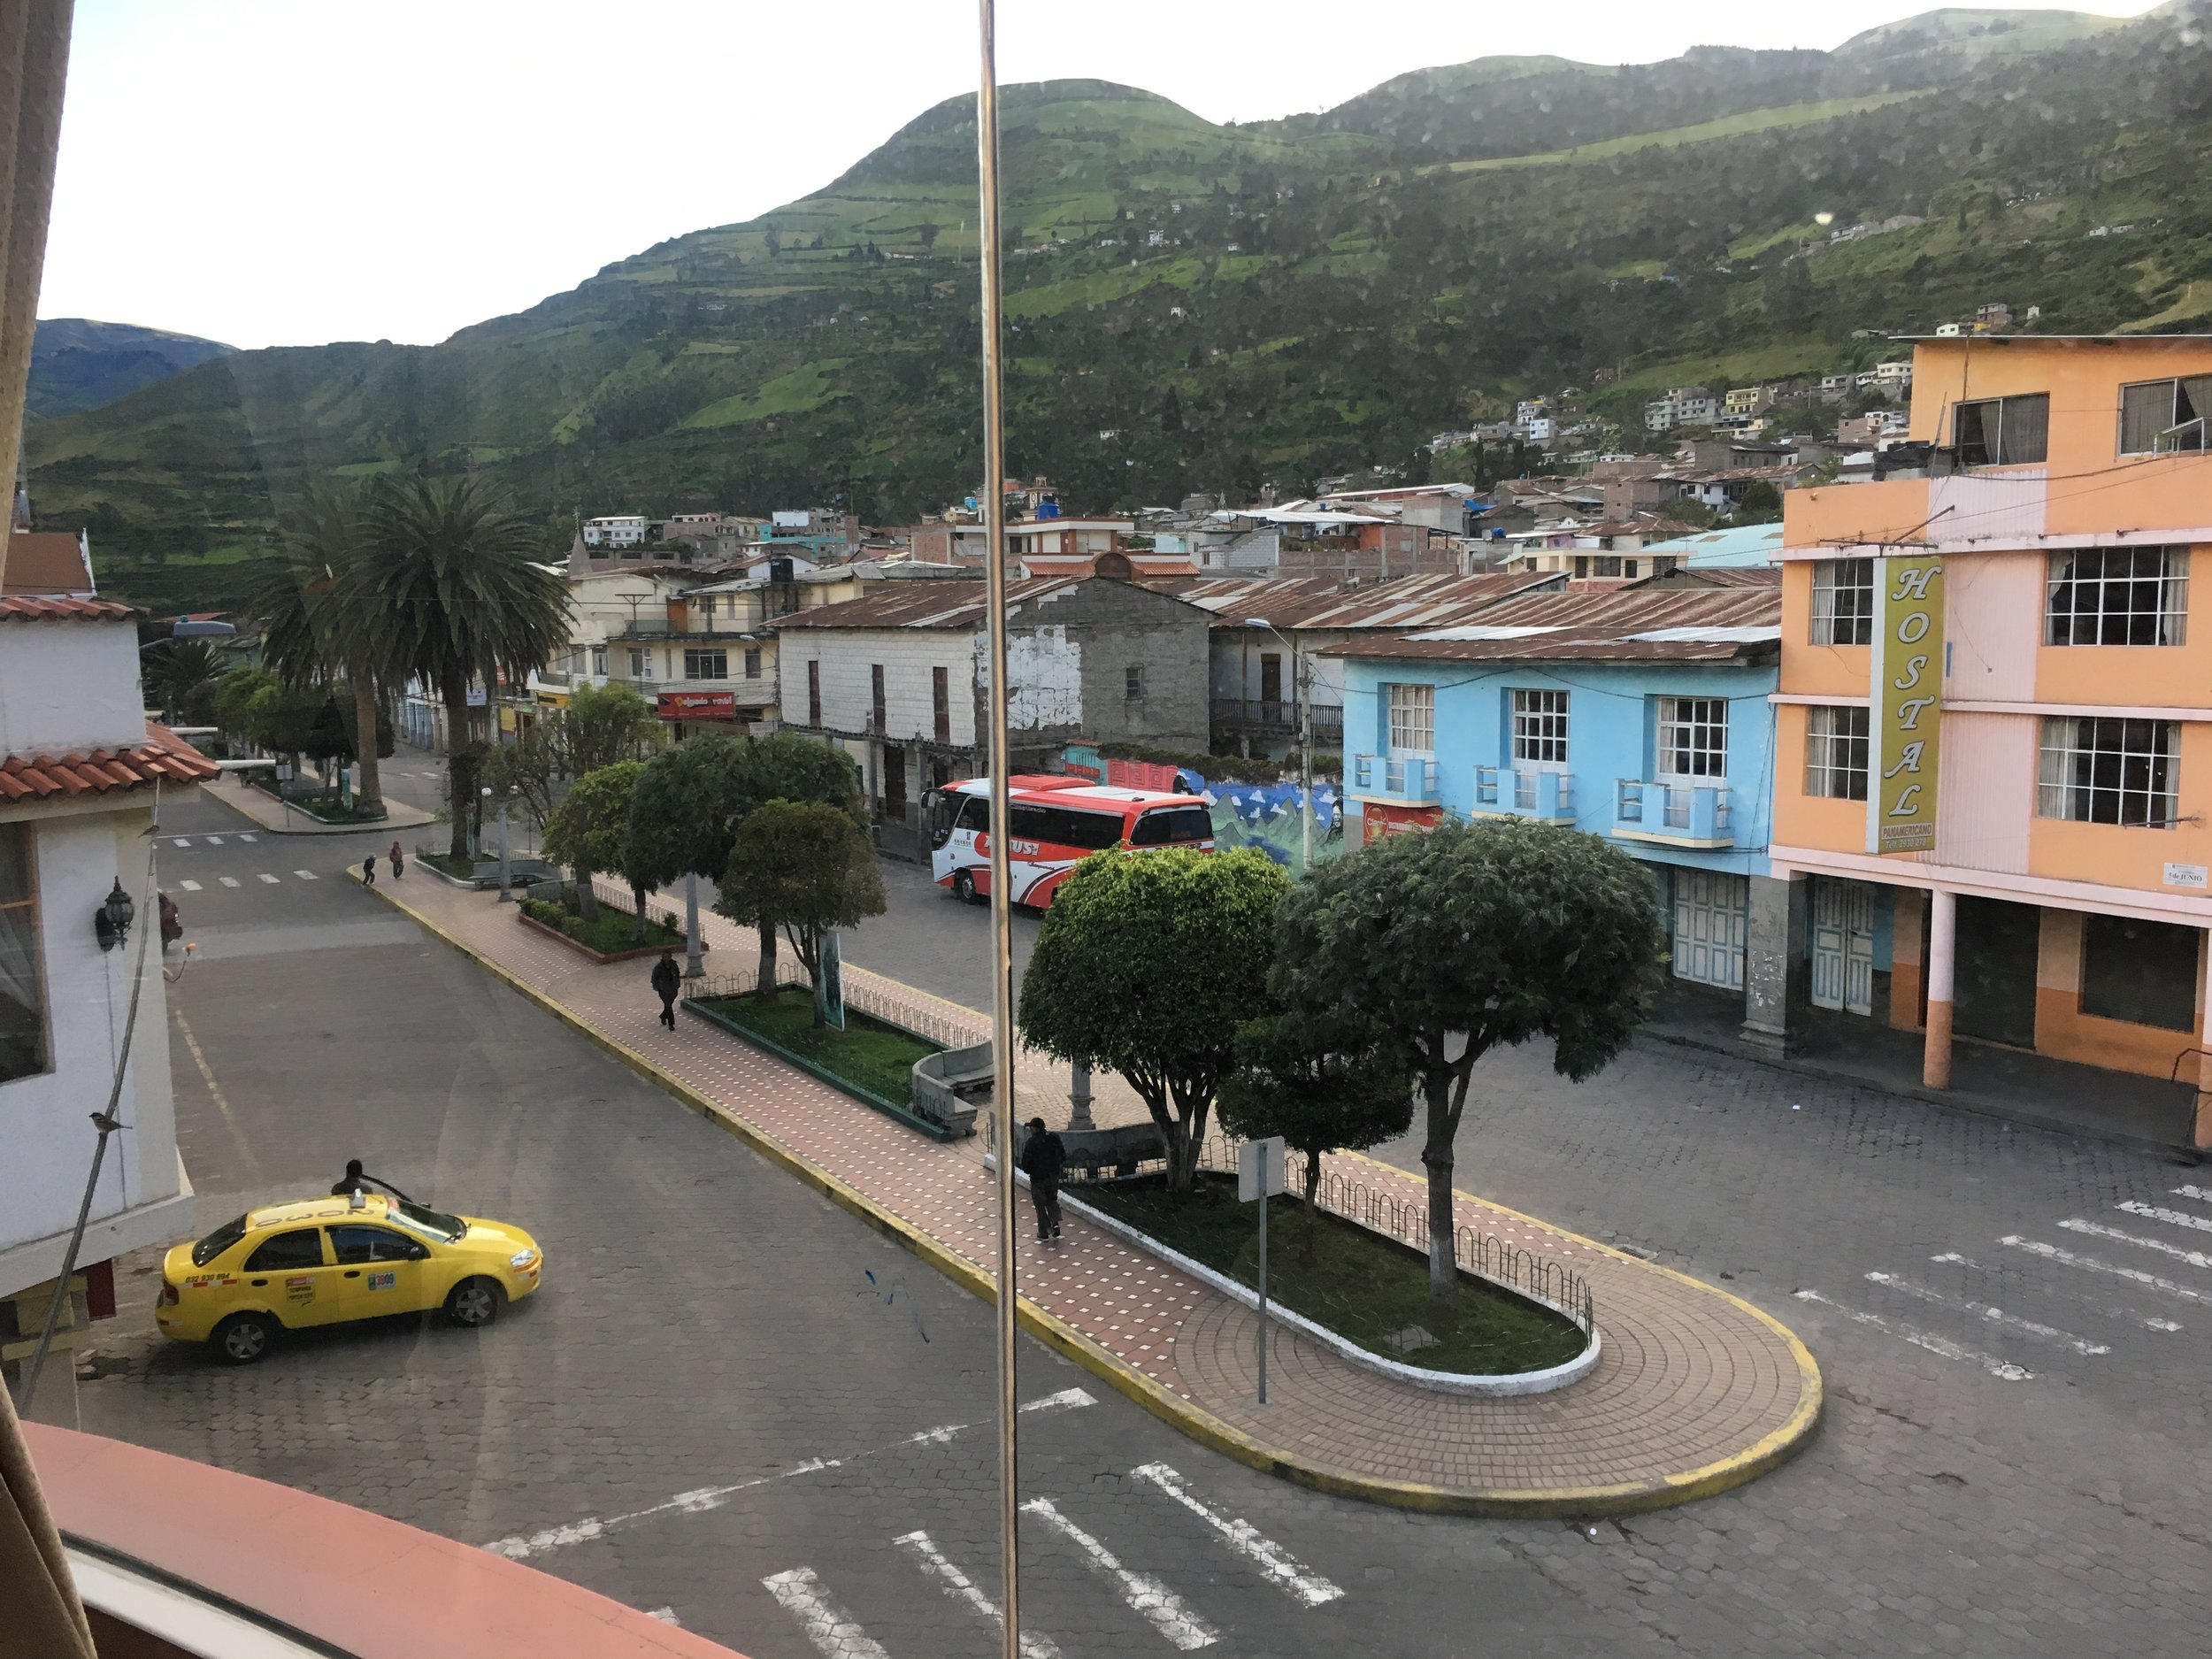 The view from our hotel in Alausi.